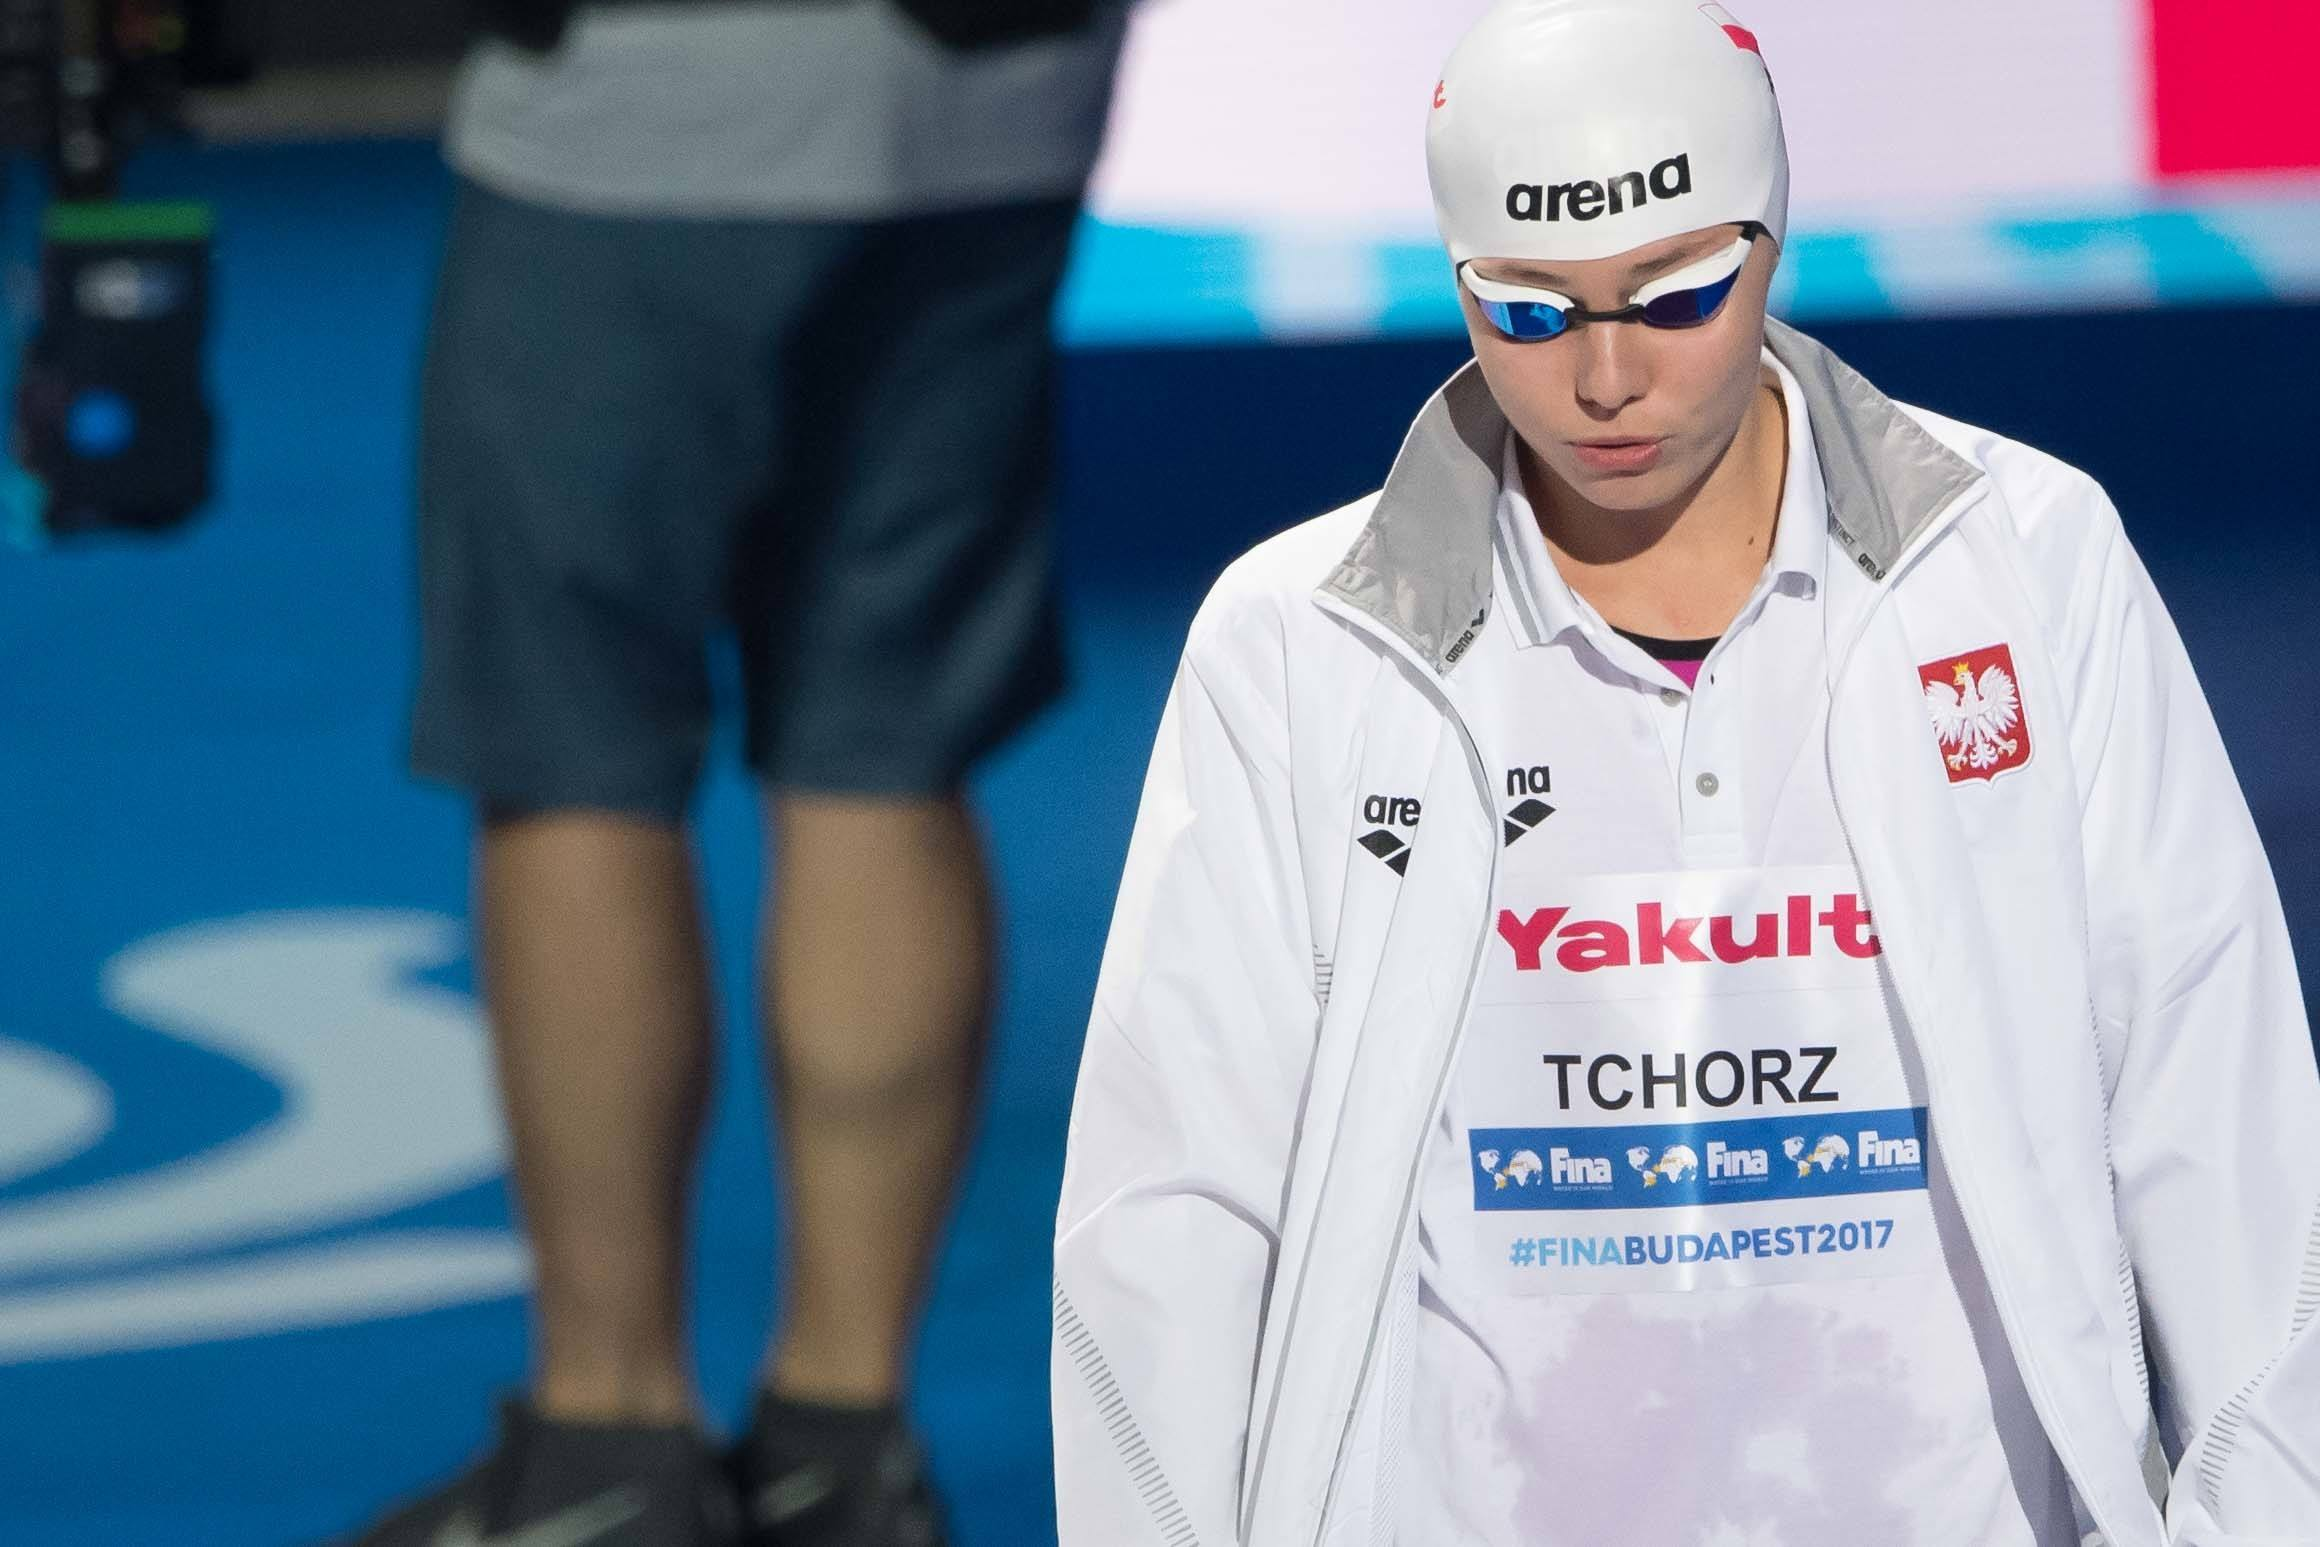 Six Polish swimmers recalled from the Olympics in Japan